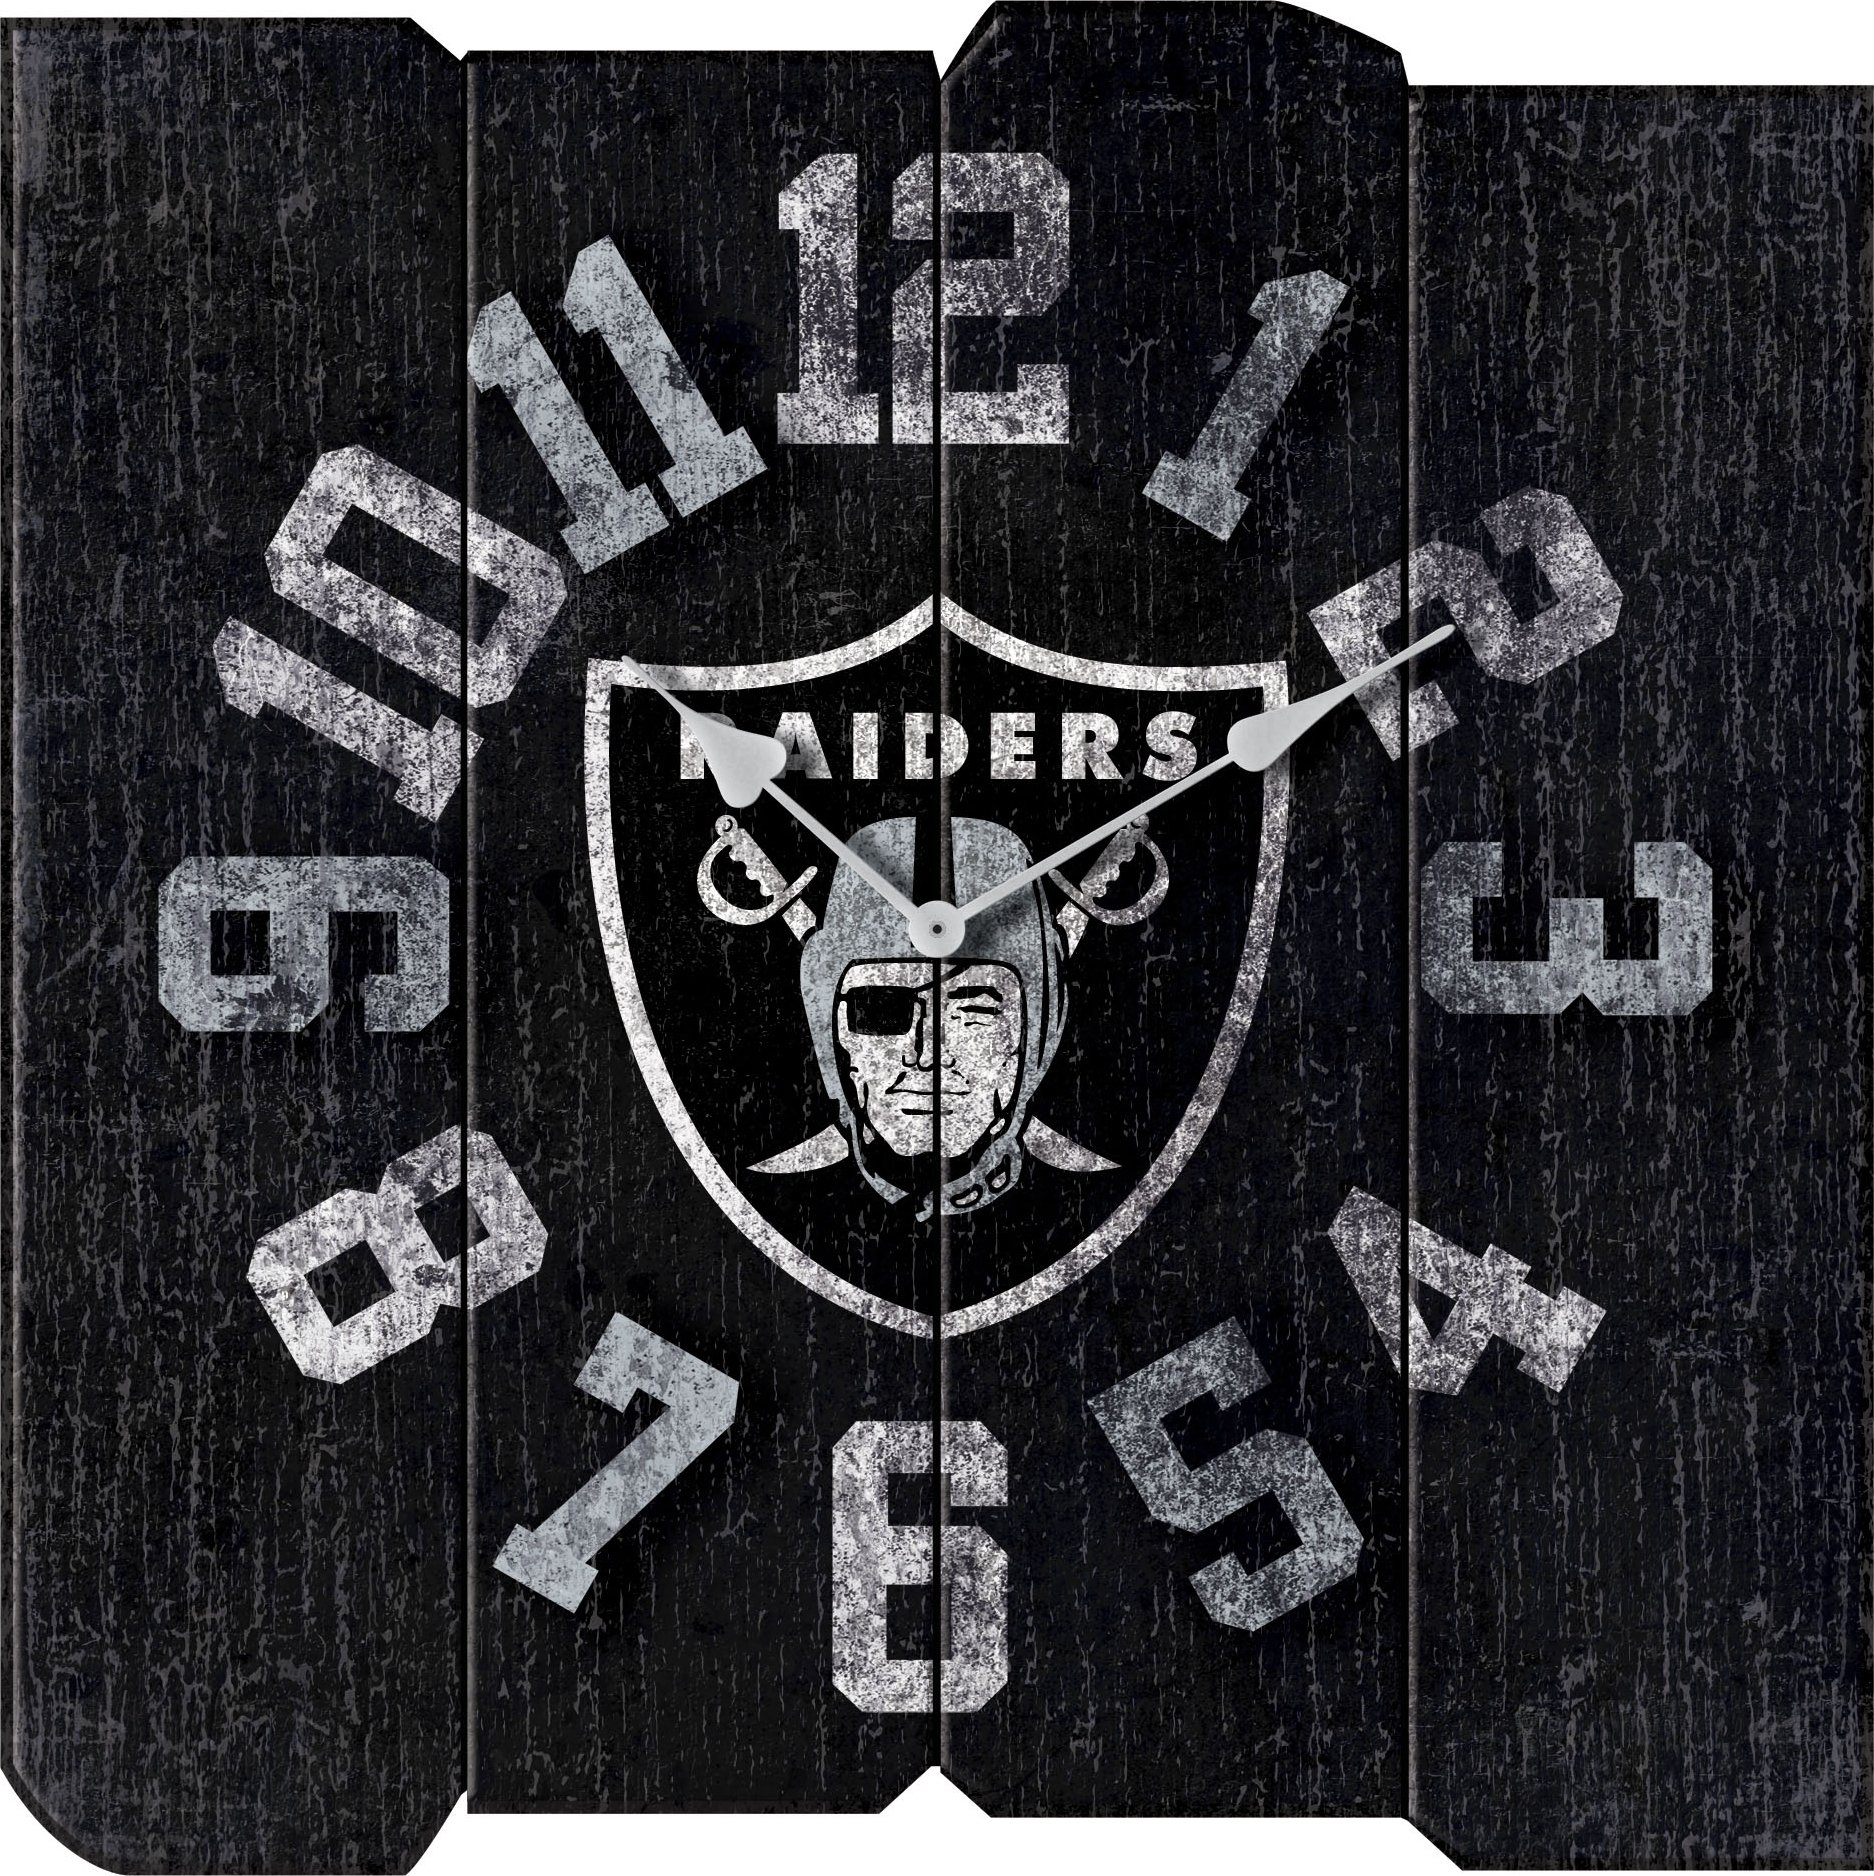 Imperial Officially Licensed NFL Merchandise: Vintage Square Clock, Oakland Raiders by Imperial